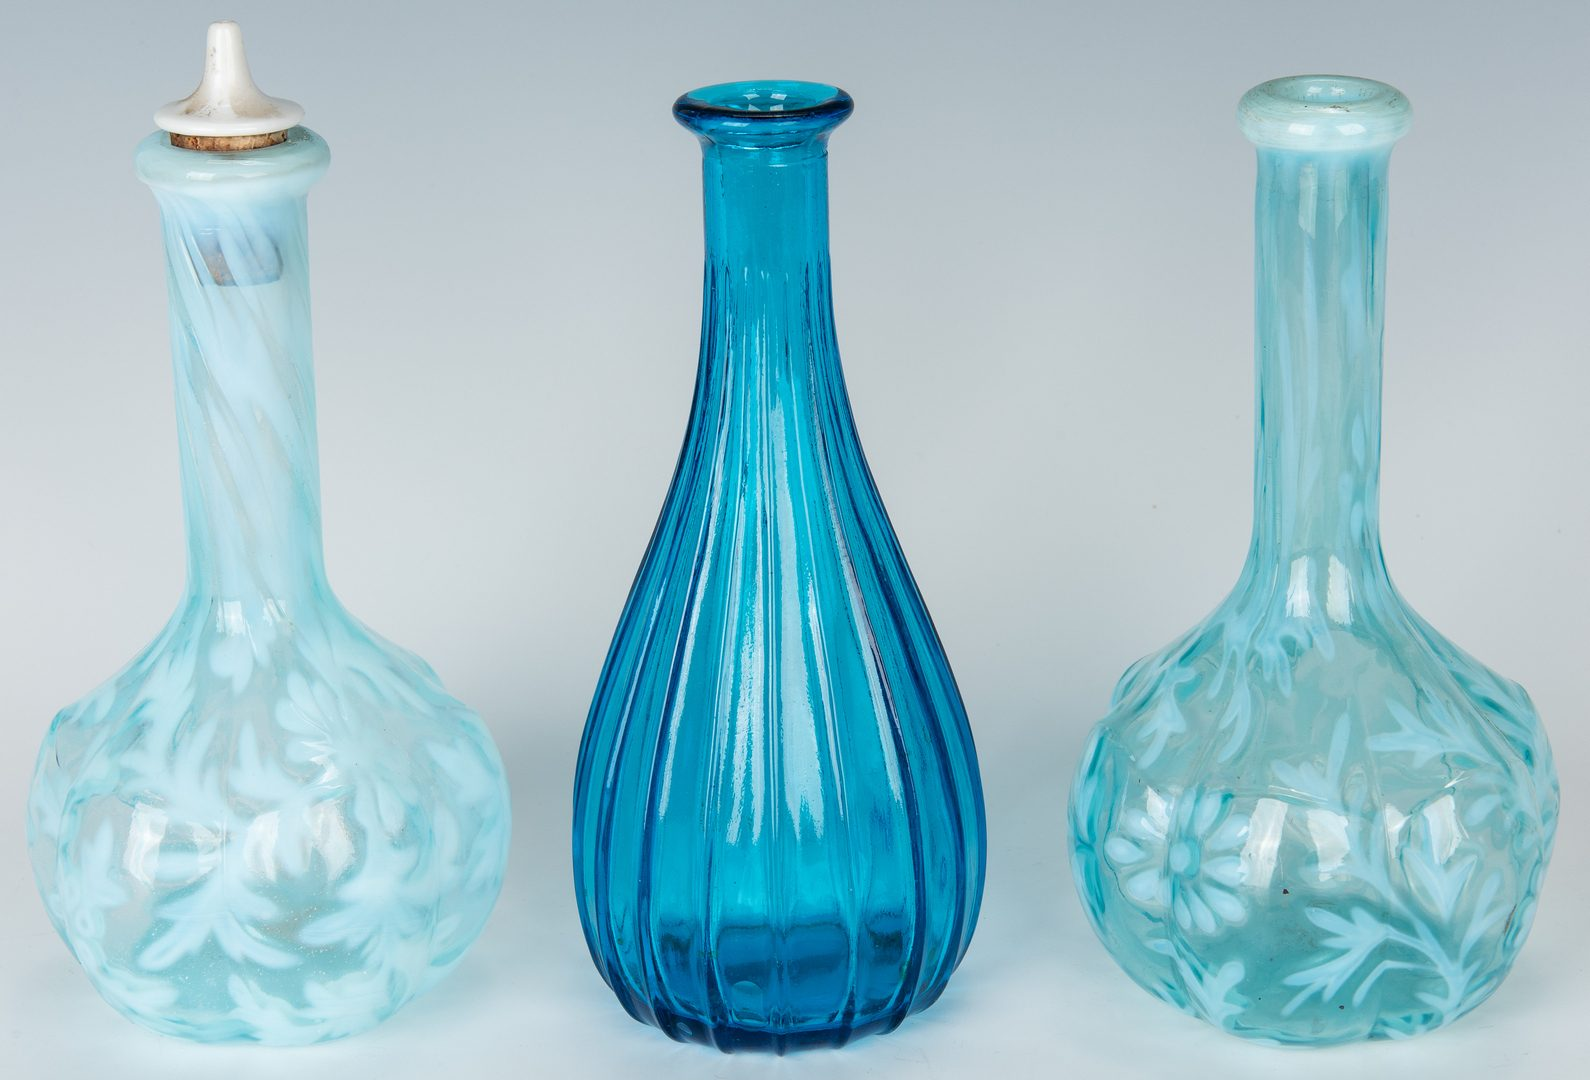 Lot 221: Collection of 15 Art Glass Barber Bottles